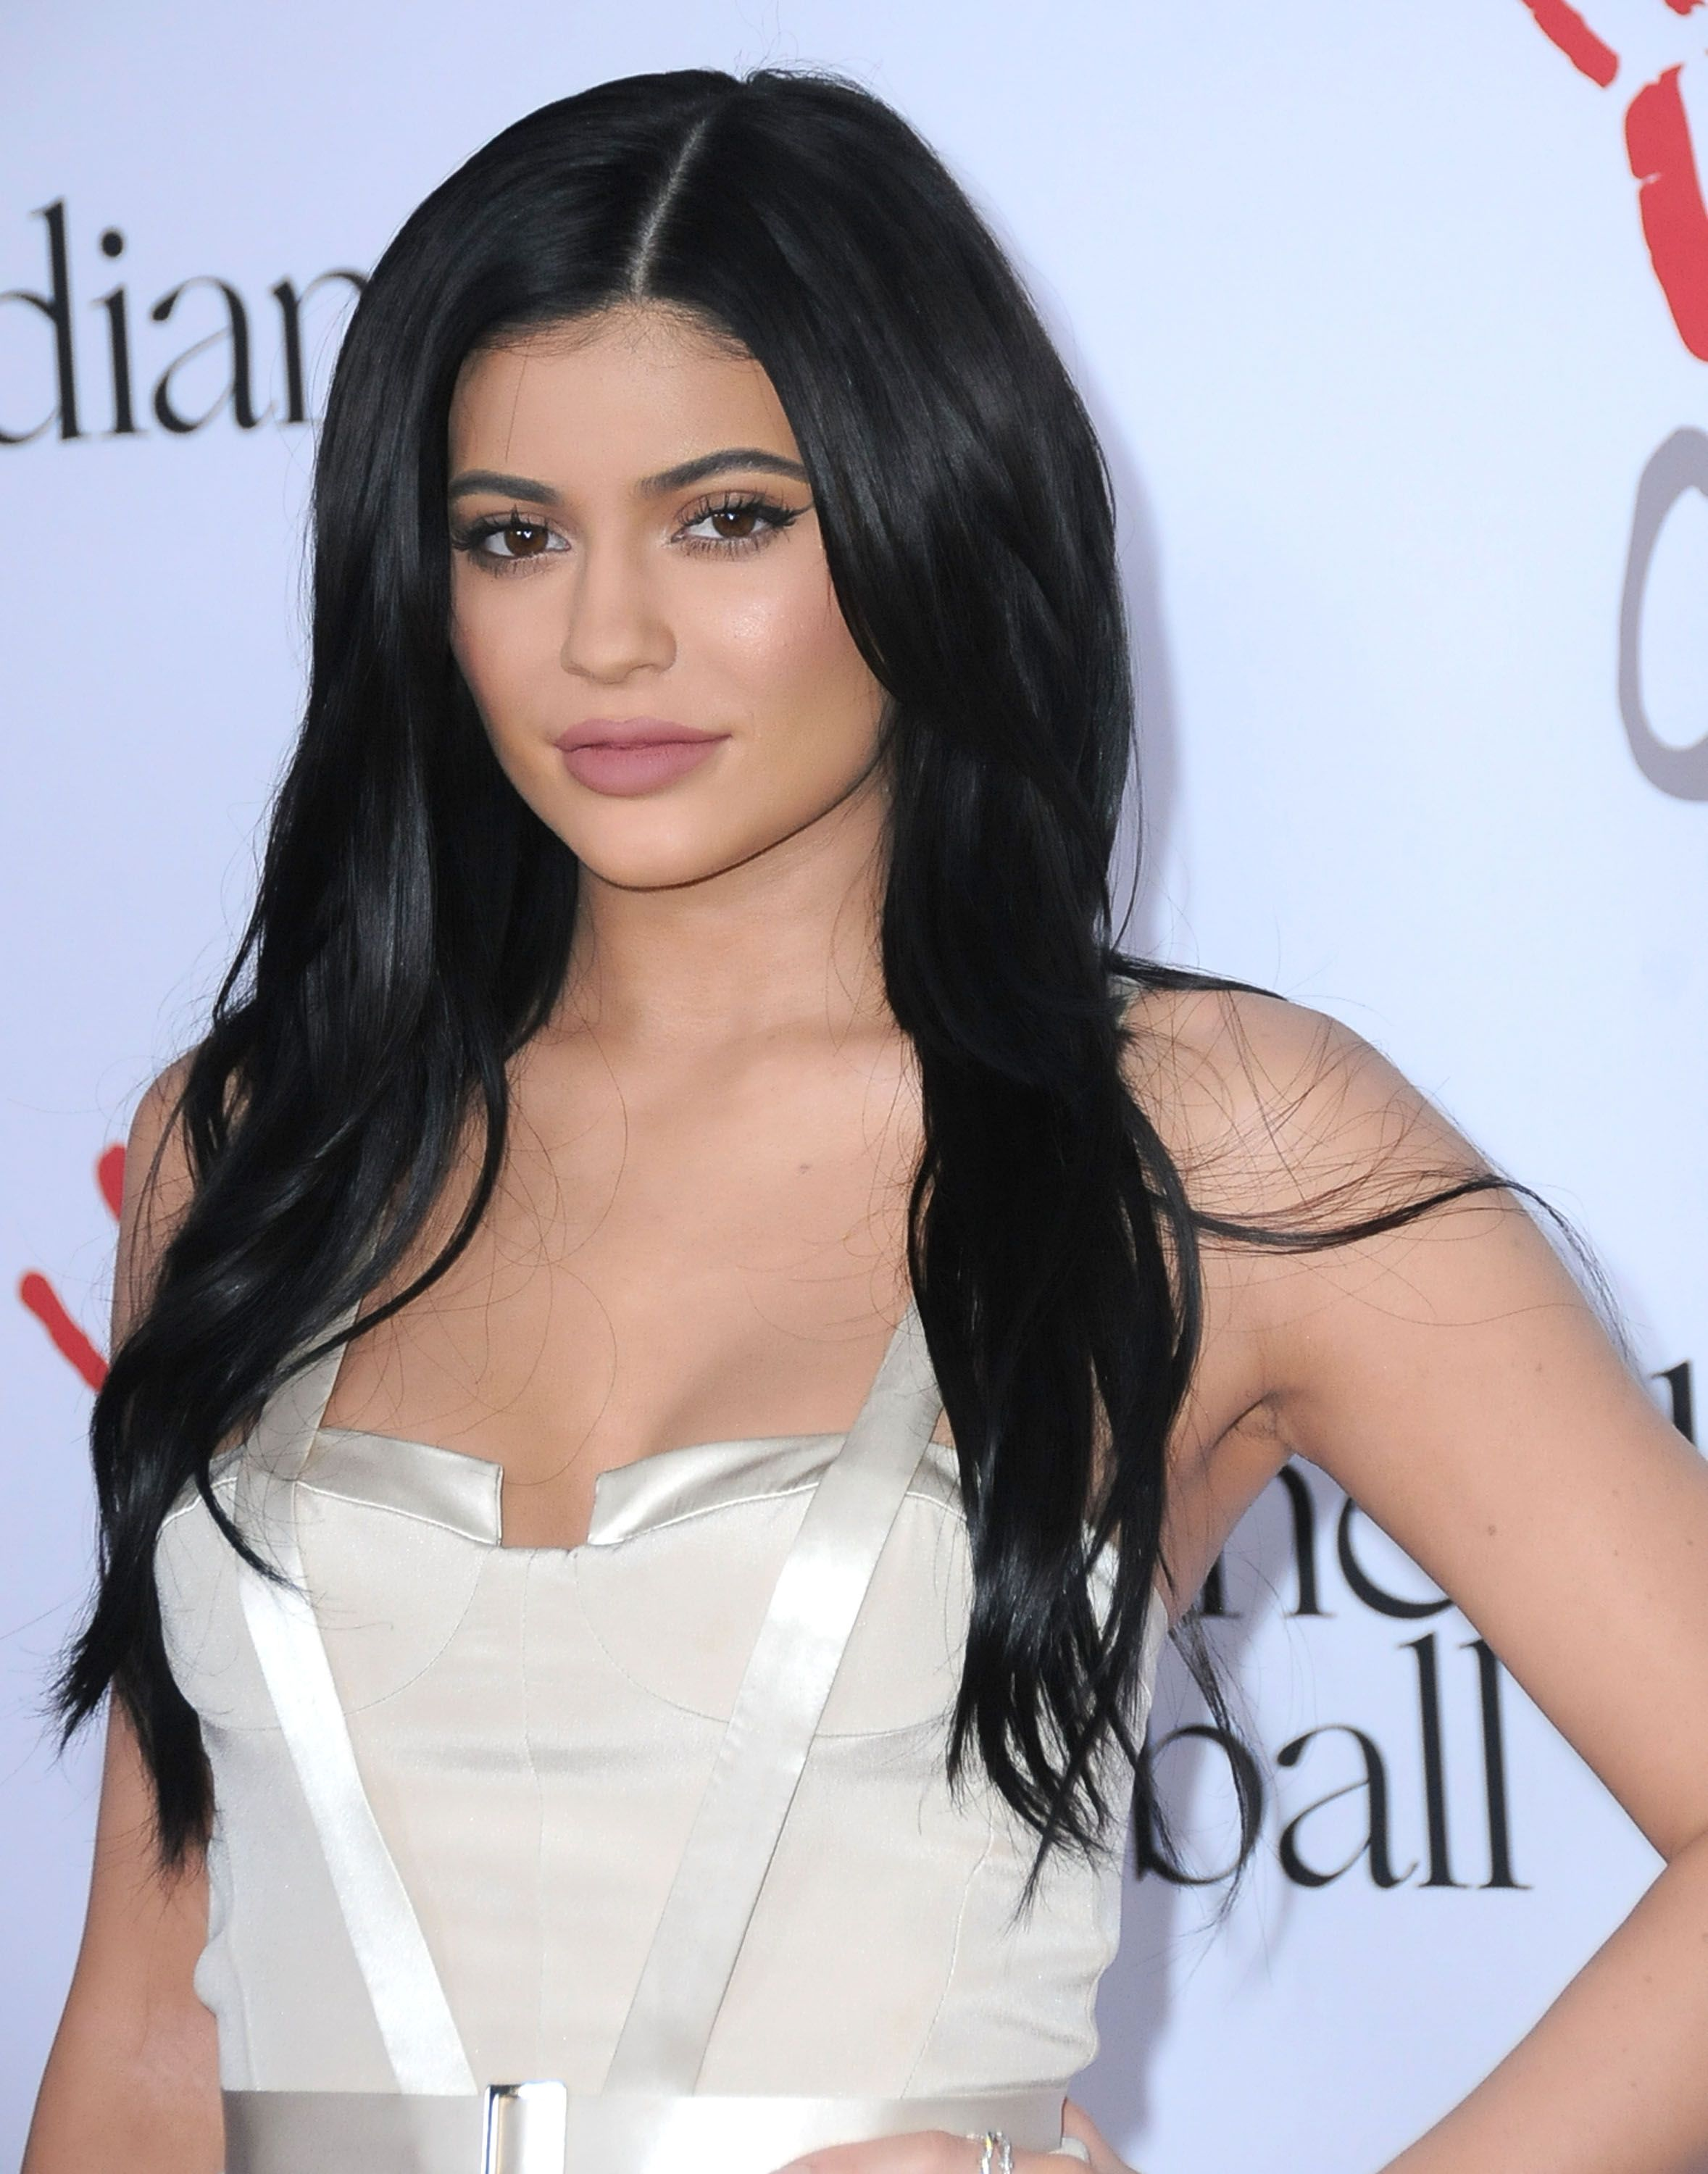 Beauty mogul Kylie Jenner at the Second Annual Diamond Ball on December 10, 2015 in Santa Monica. | Photo: Getty Images